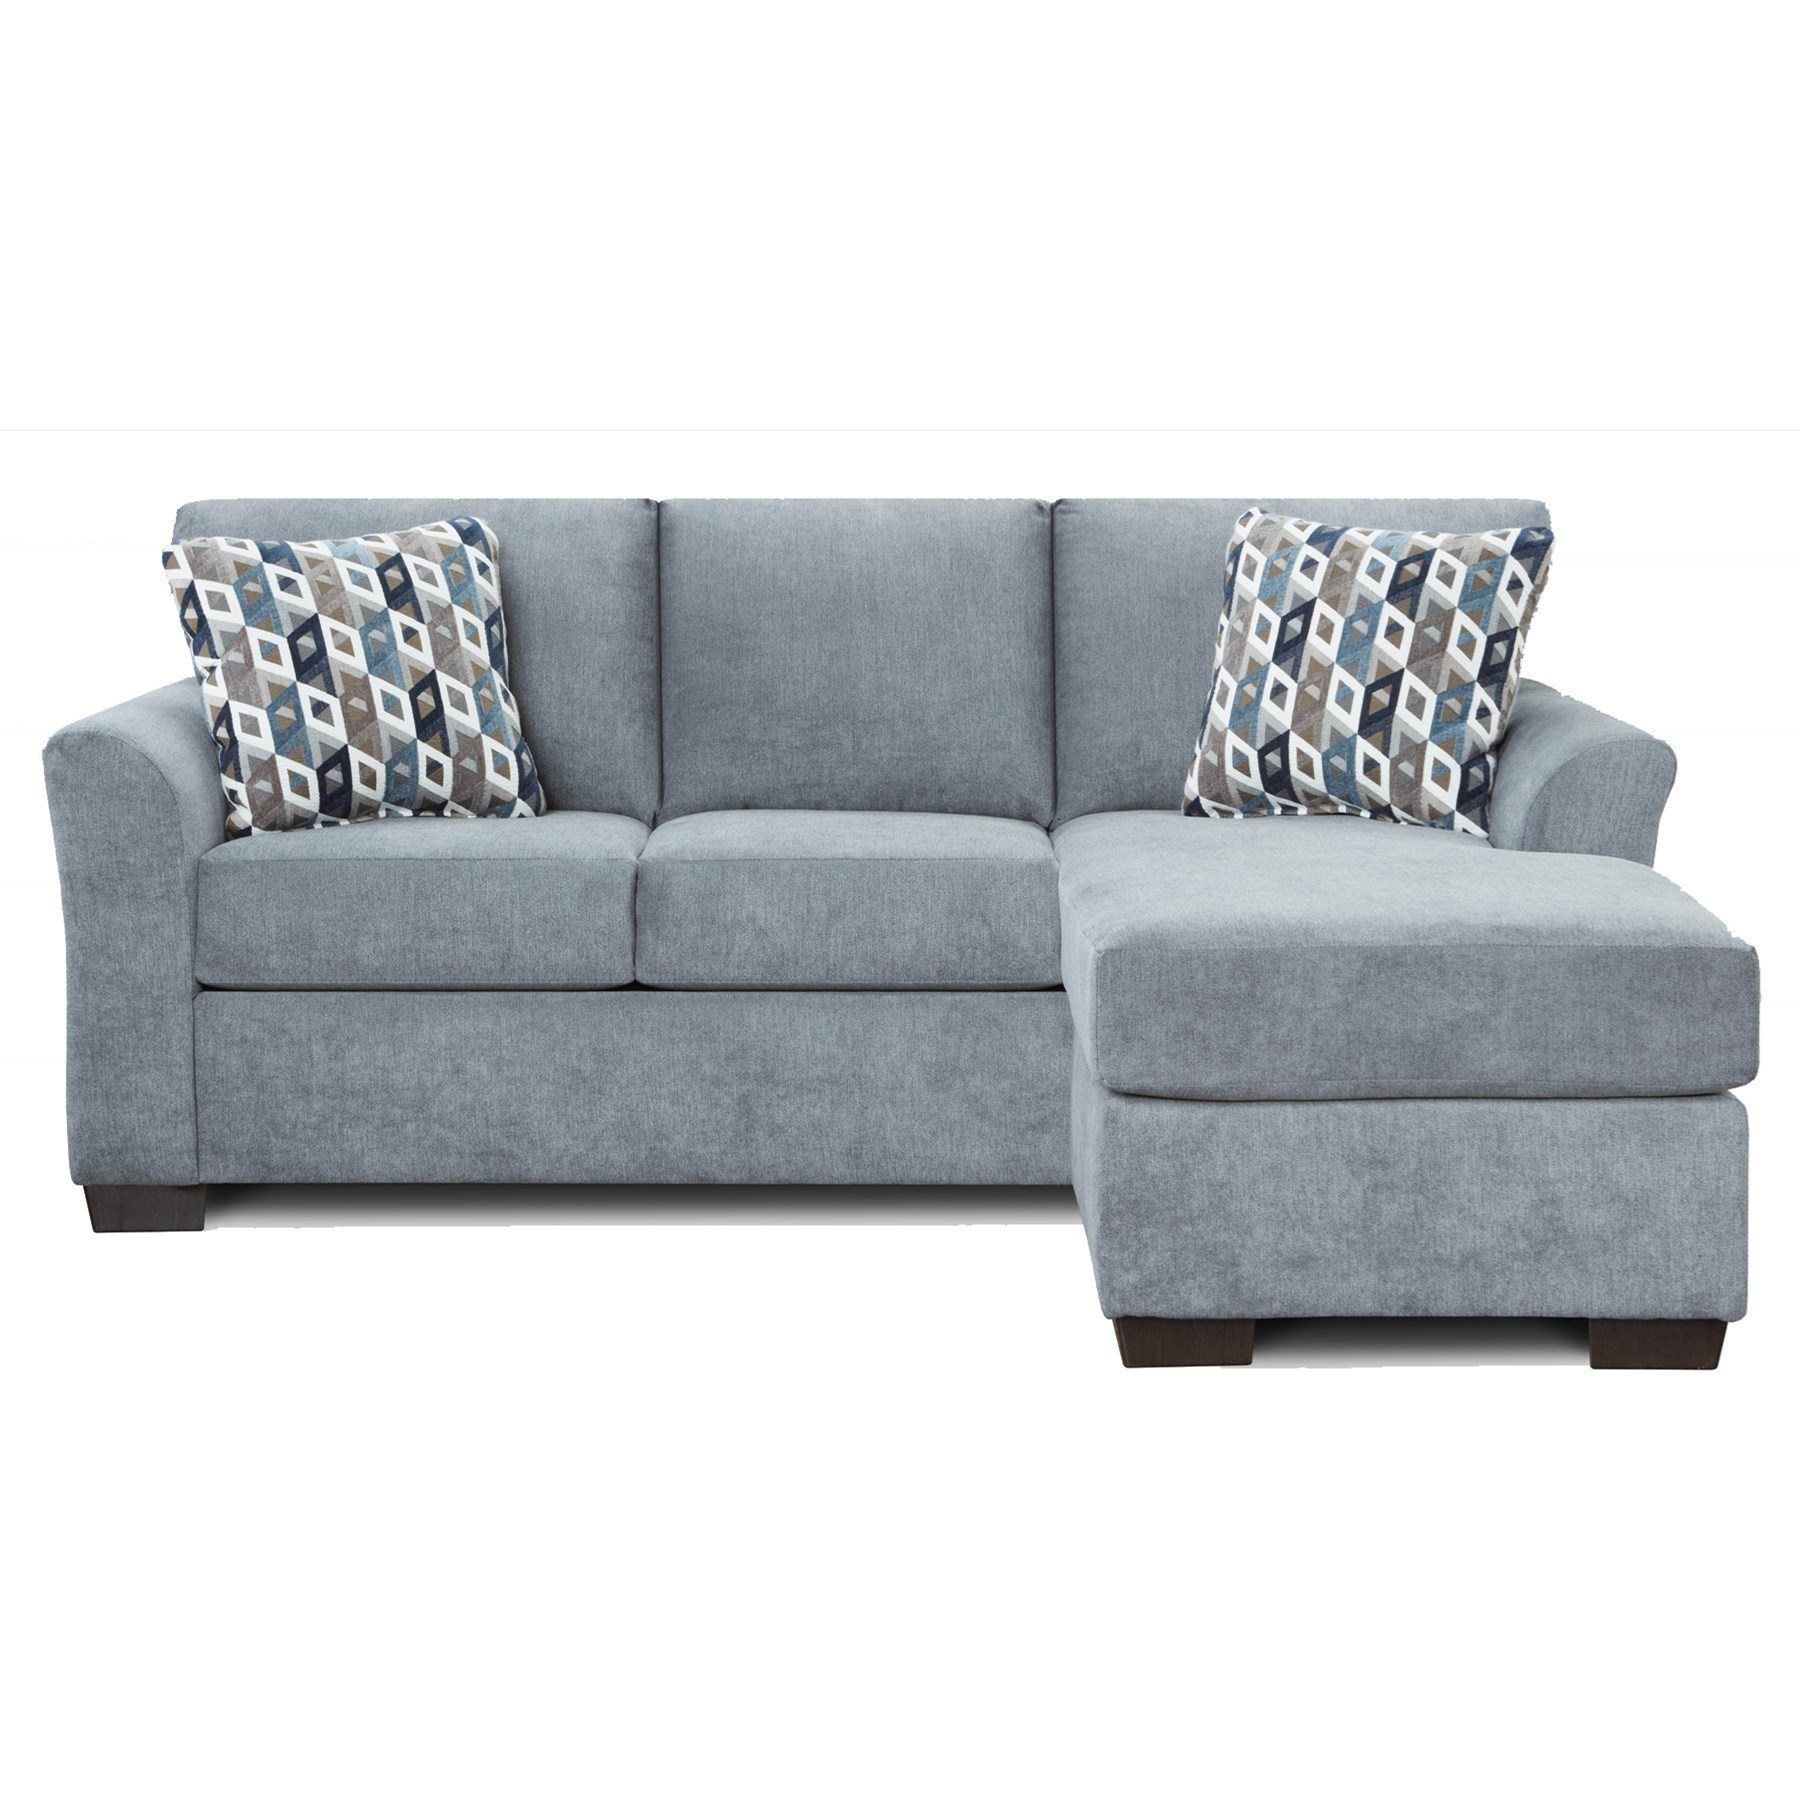 Affordable Furniture Cosmopolitan 3900 Queen Sleeper Sofa With Chaise And  Flared Arms